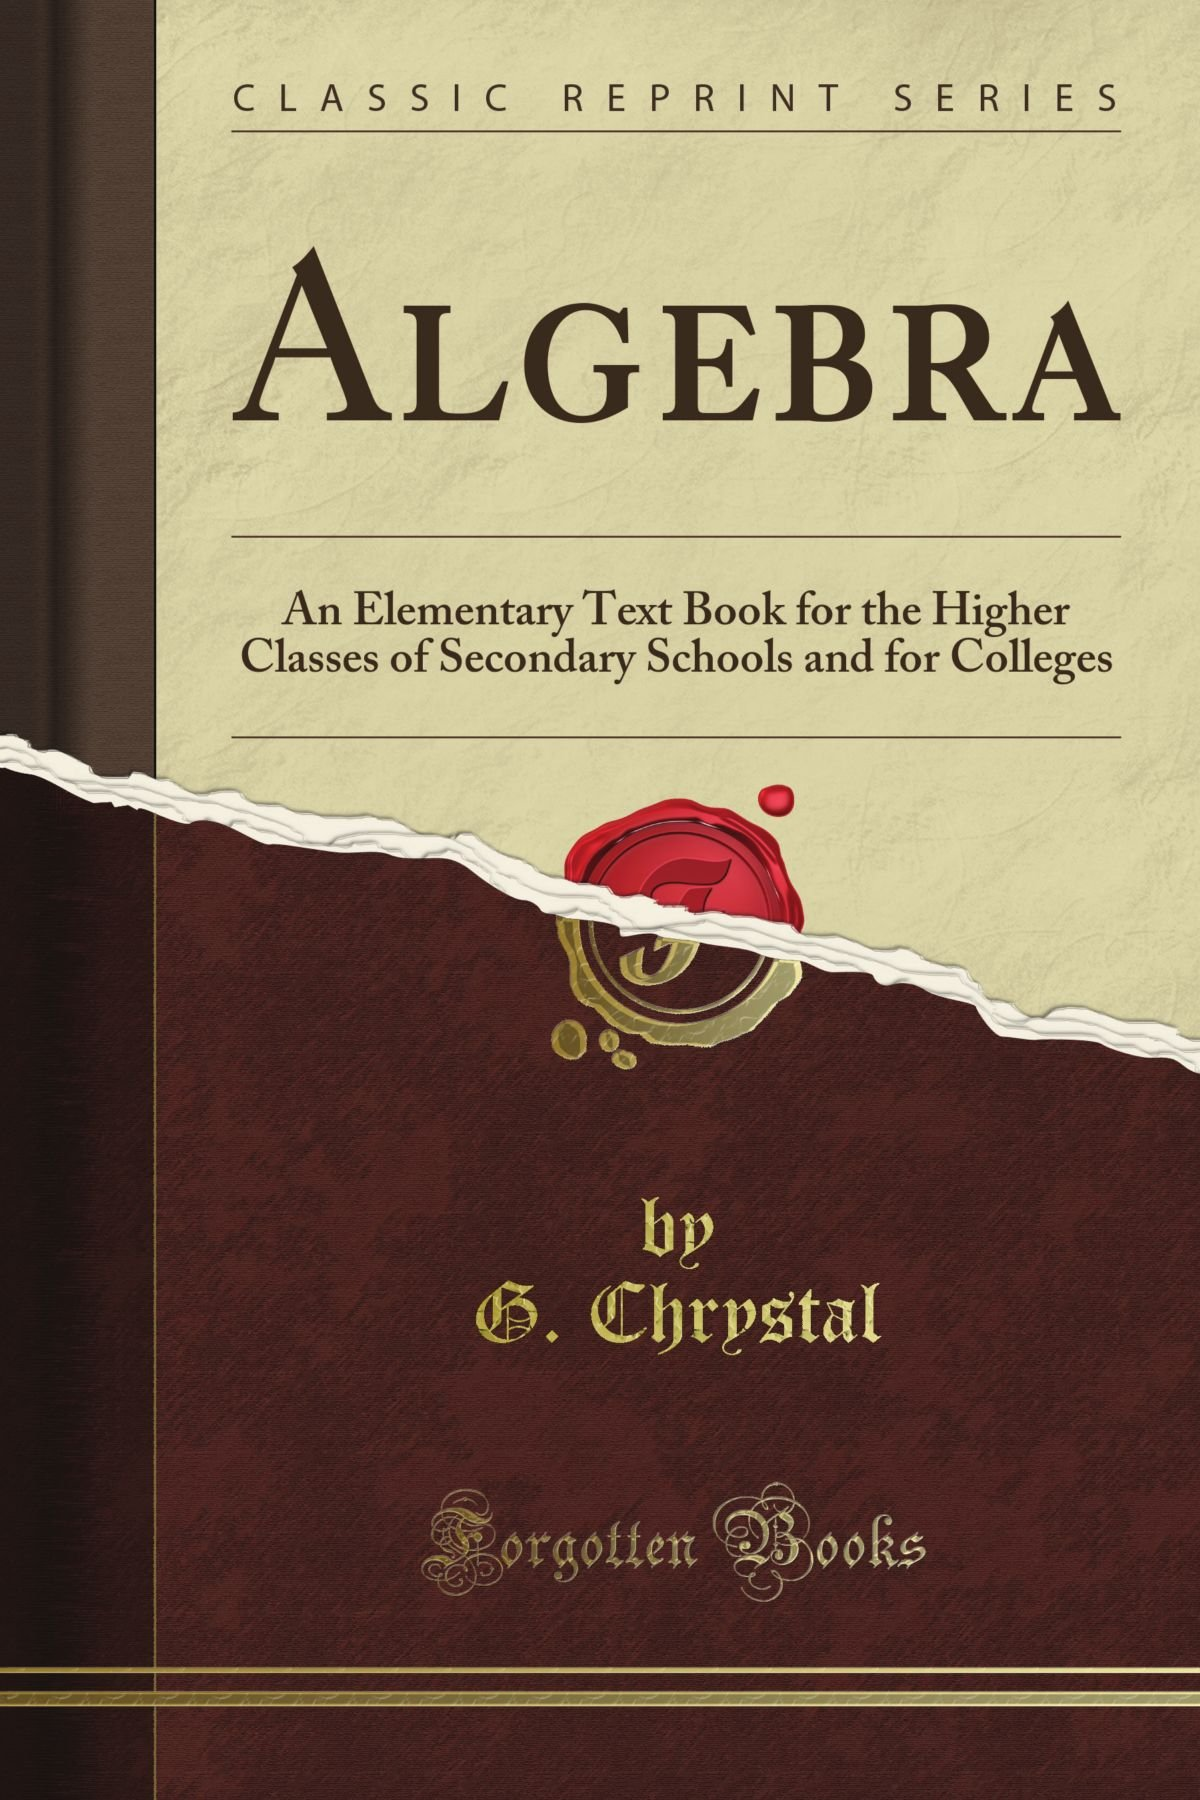 Algebra: An Elementary Text Book for the Higher Classes of Secondary Schools and for Colleges (Classic Reprint) ebook